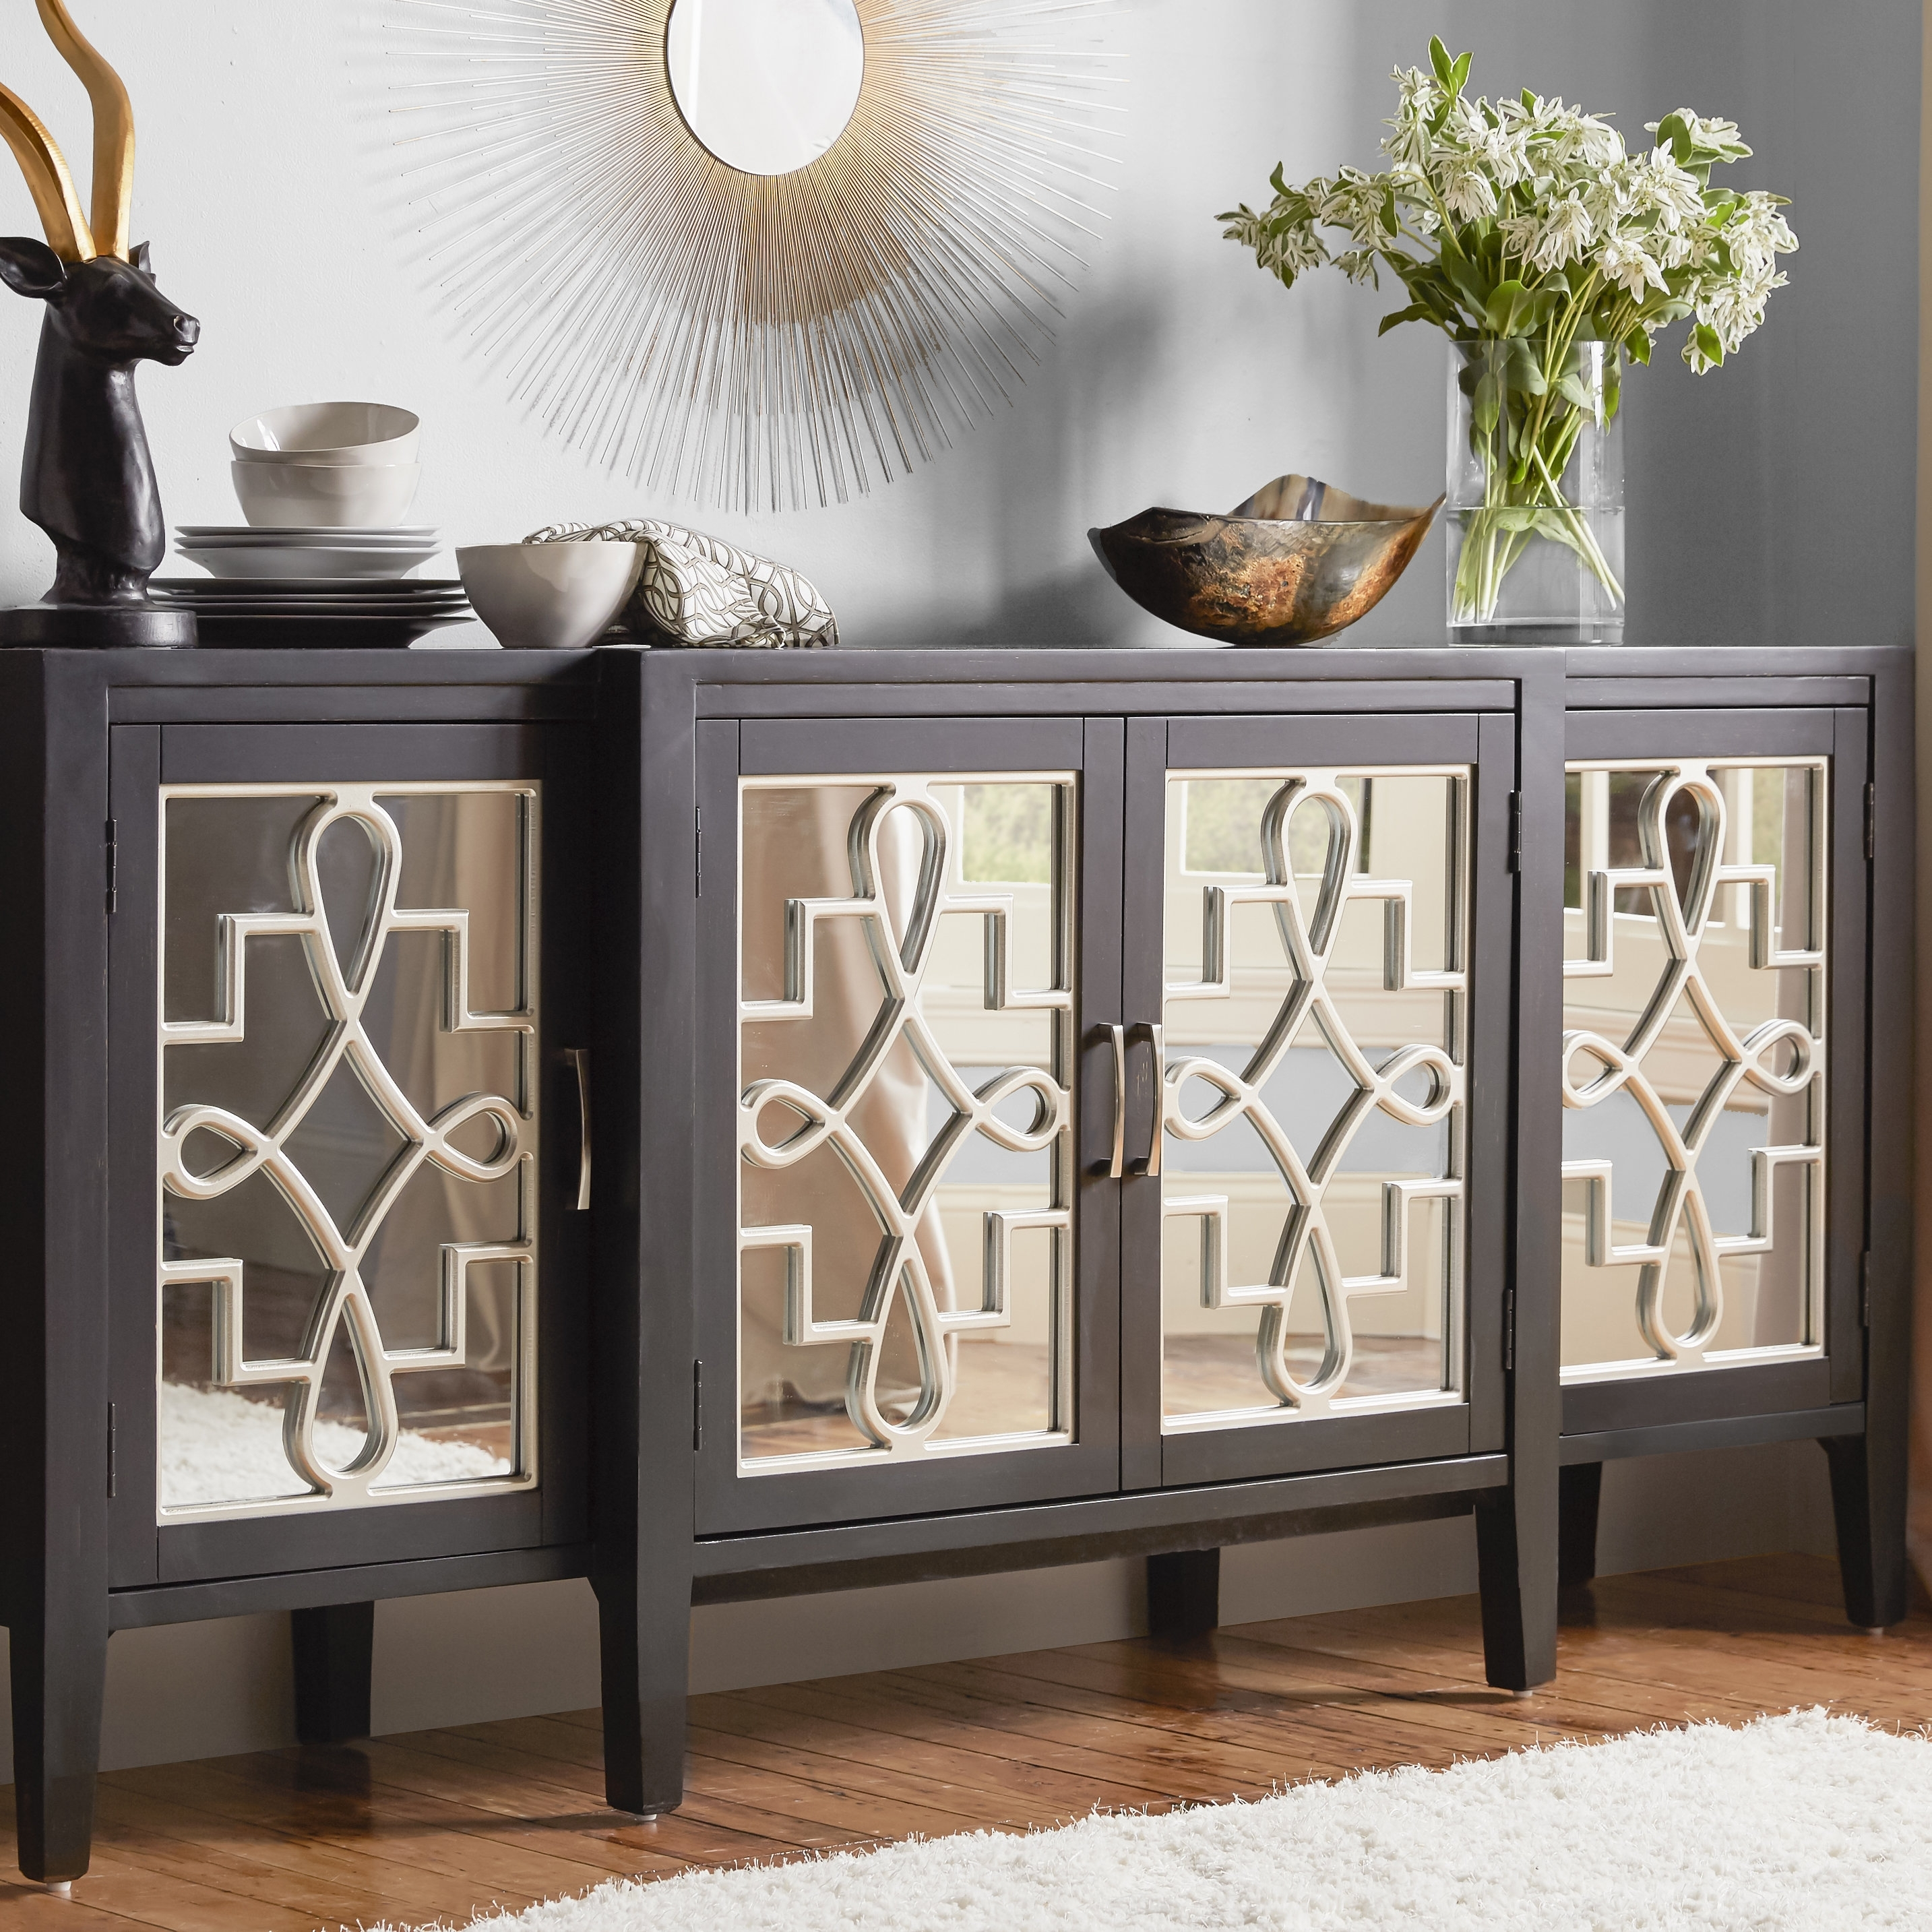 Astoria Grand Beesley Sideboard & Reviews | Wayfair pertaining to 2-Door Mirror Front Sideboards (Image 4 of 30)